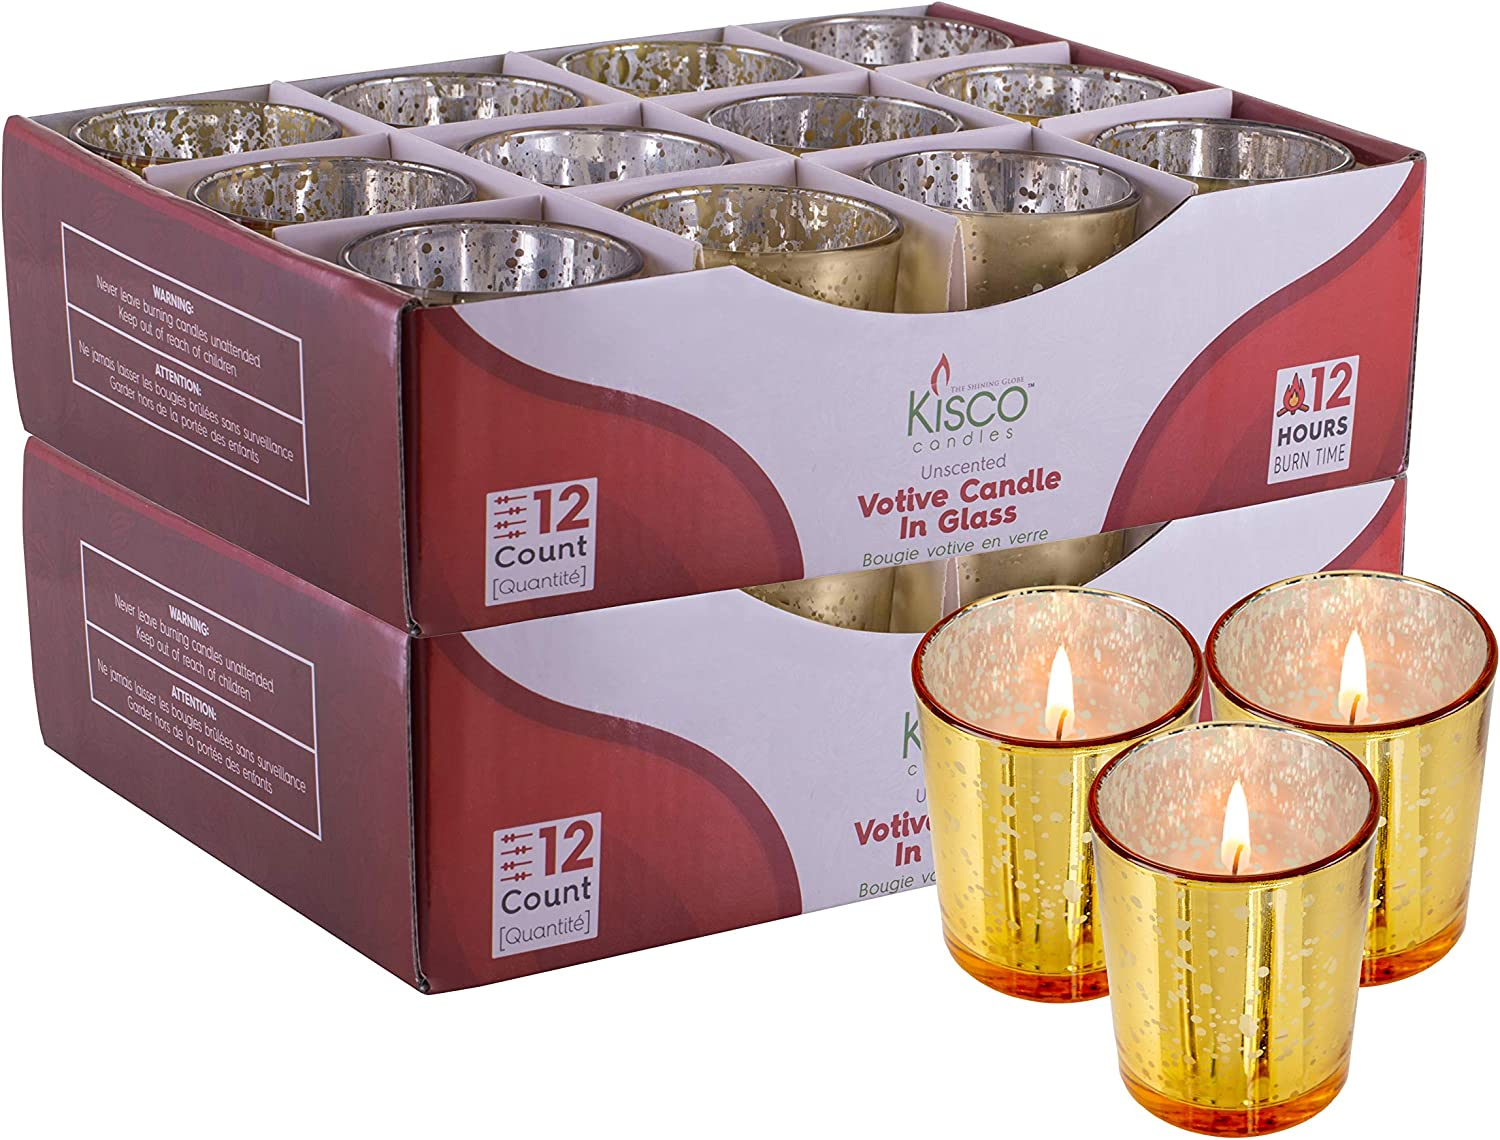 KISCO CANDLES Votive Candles with Holders 24-Pack 12 Hour Gold Decorative Glass Home Decor, Beautiful Living Room, Kitchen, Bathroom Lighting   Long-Lasting Wax